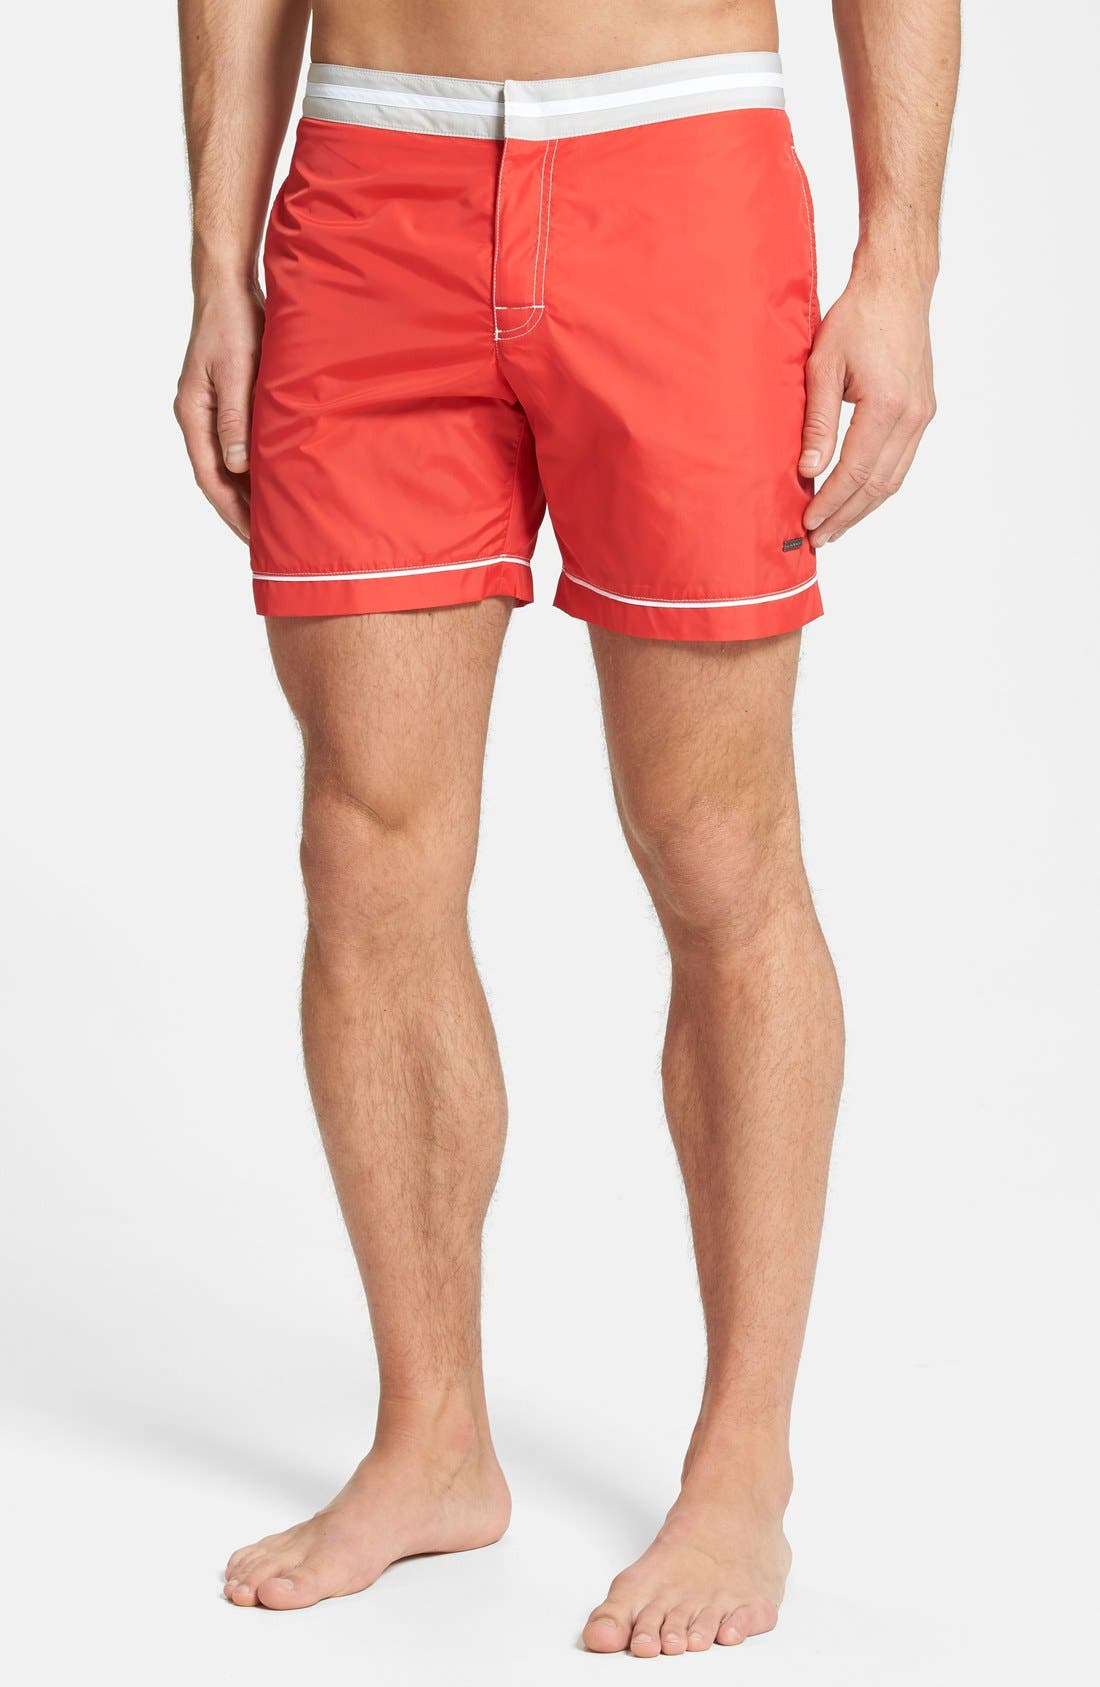 Main Image - Parke & Ronen 'Corfu' Swim Trunks